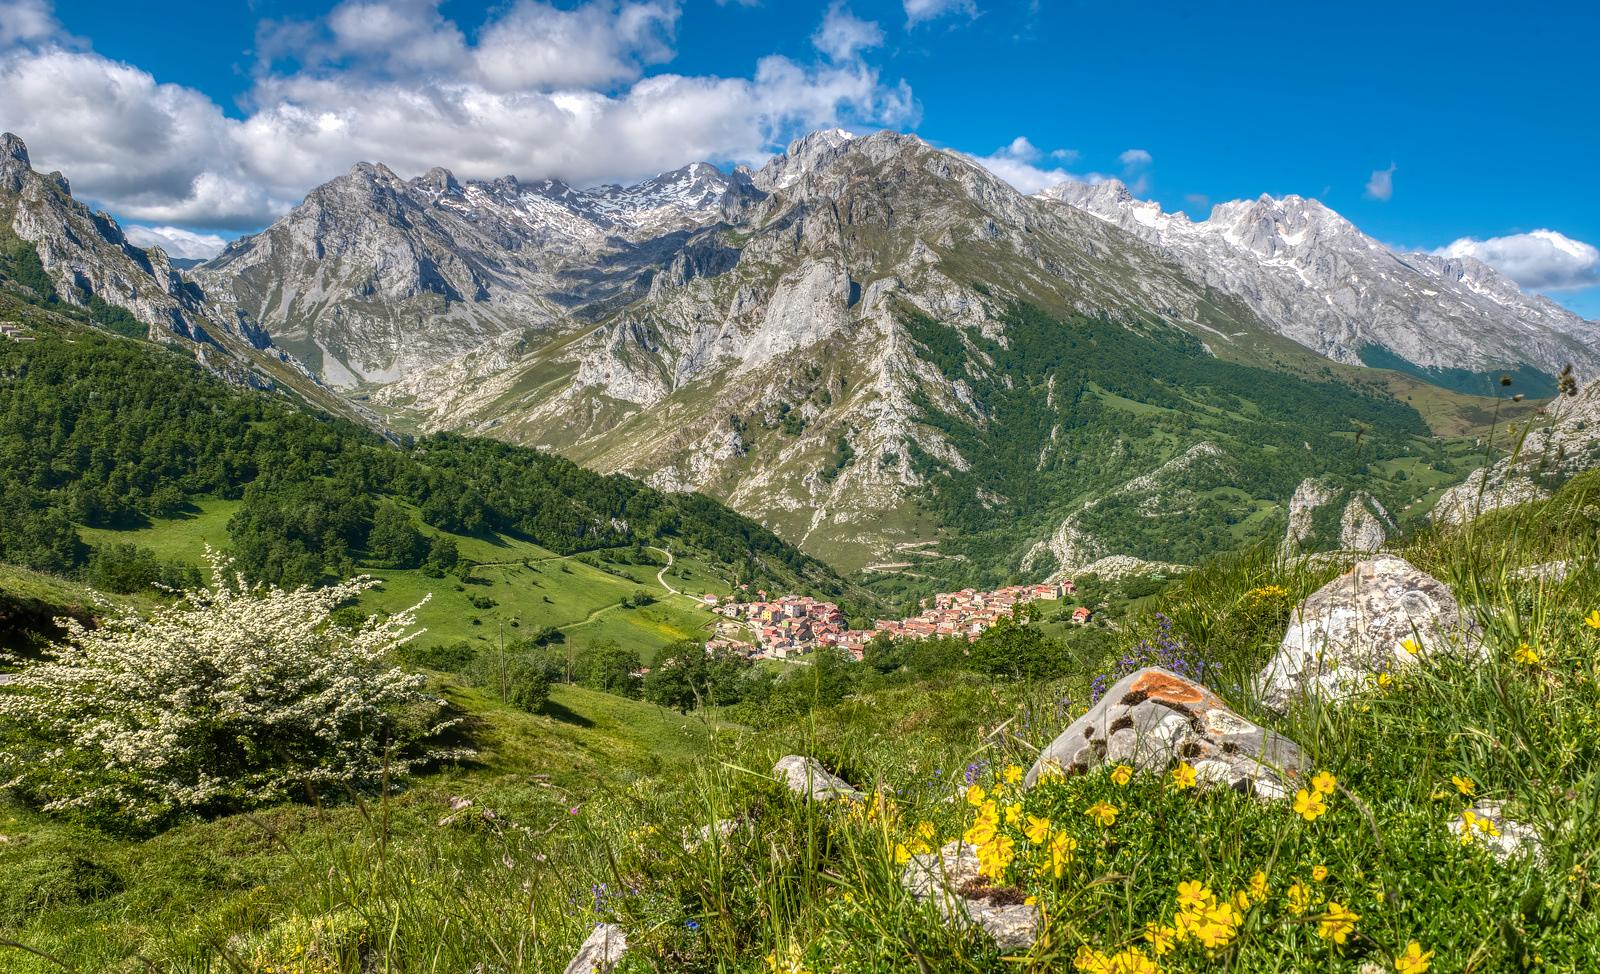 Sotres, Spain, in the Picos de Europa mountains